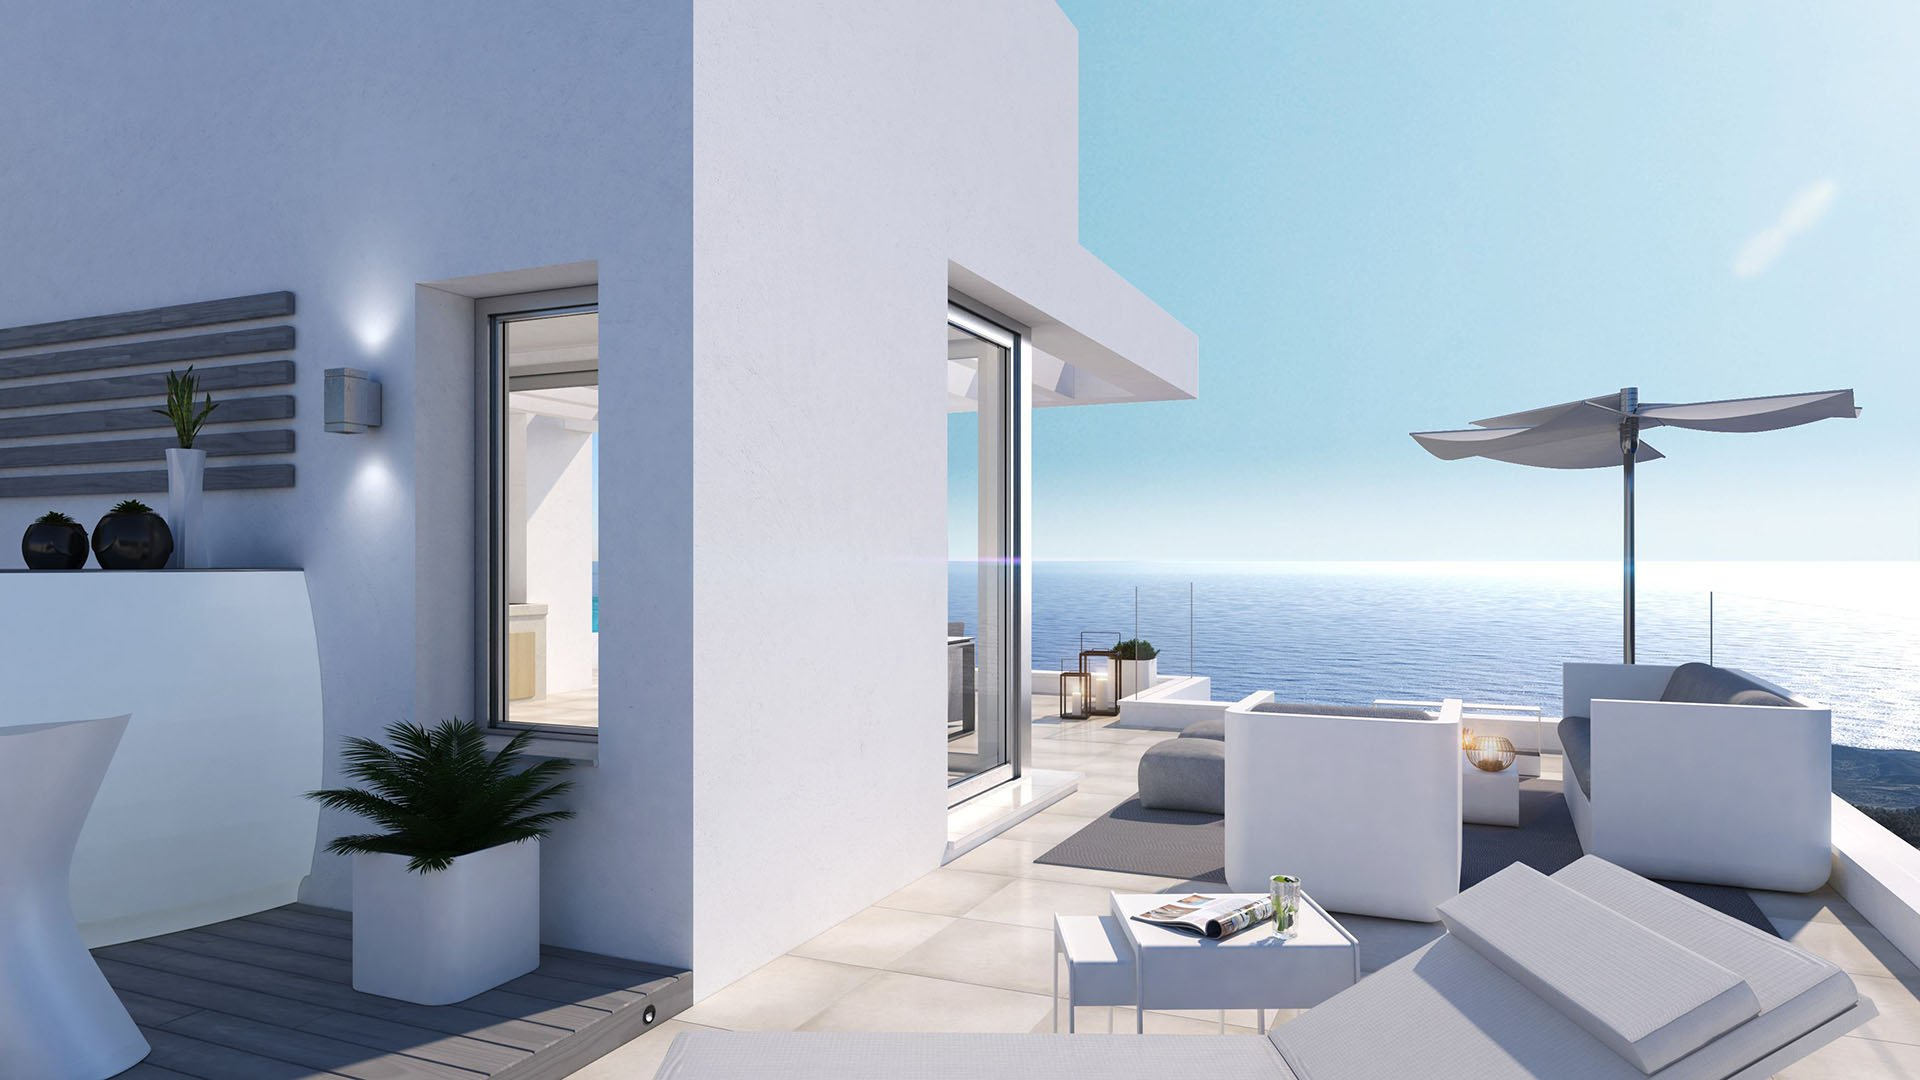 Santa Barbara Heights: High-end design en luxe resort in La Cala de Mijas